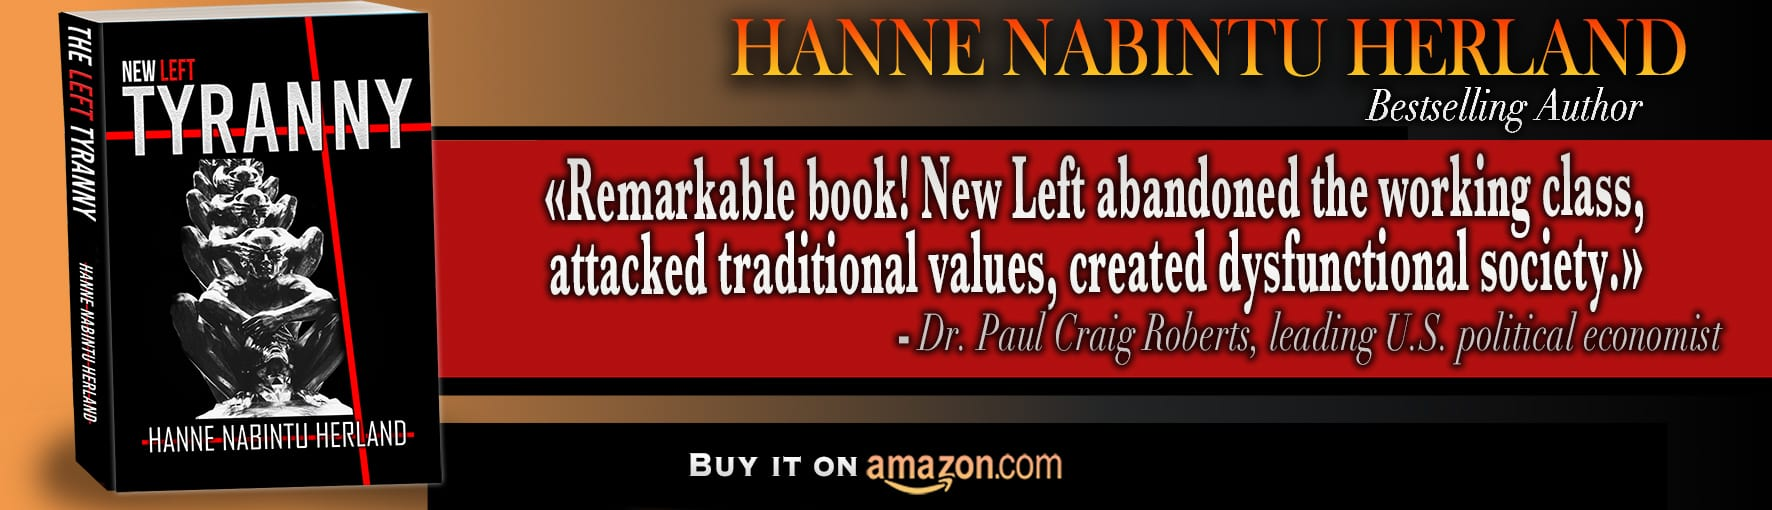 New Left Tyranny, by bestselling authorHanne Herland